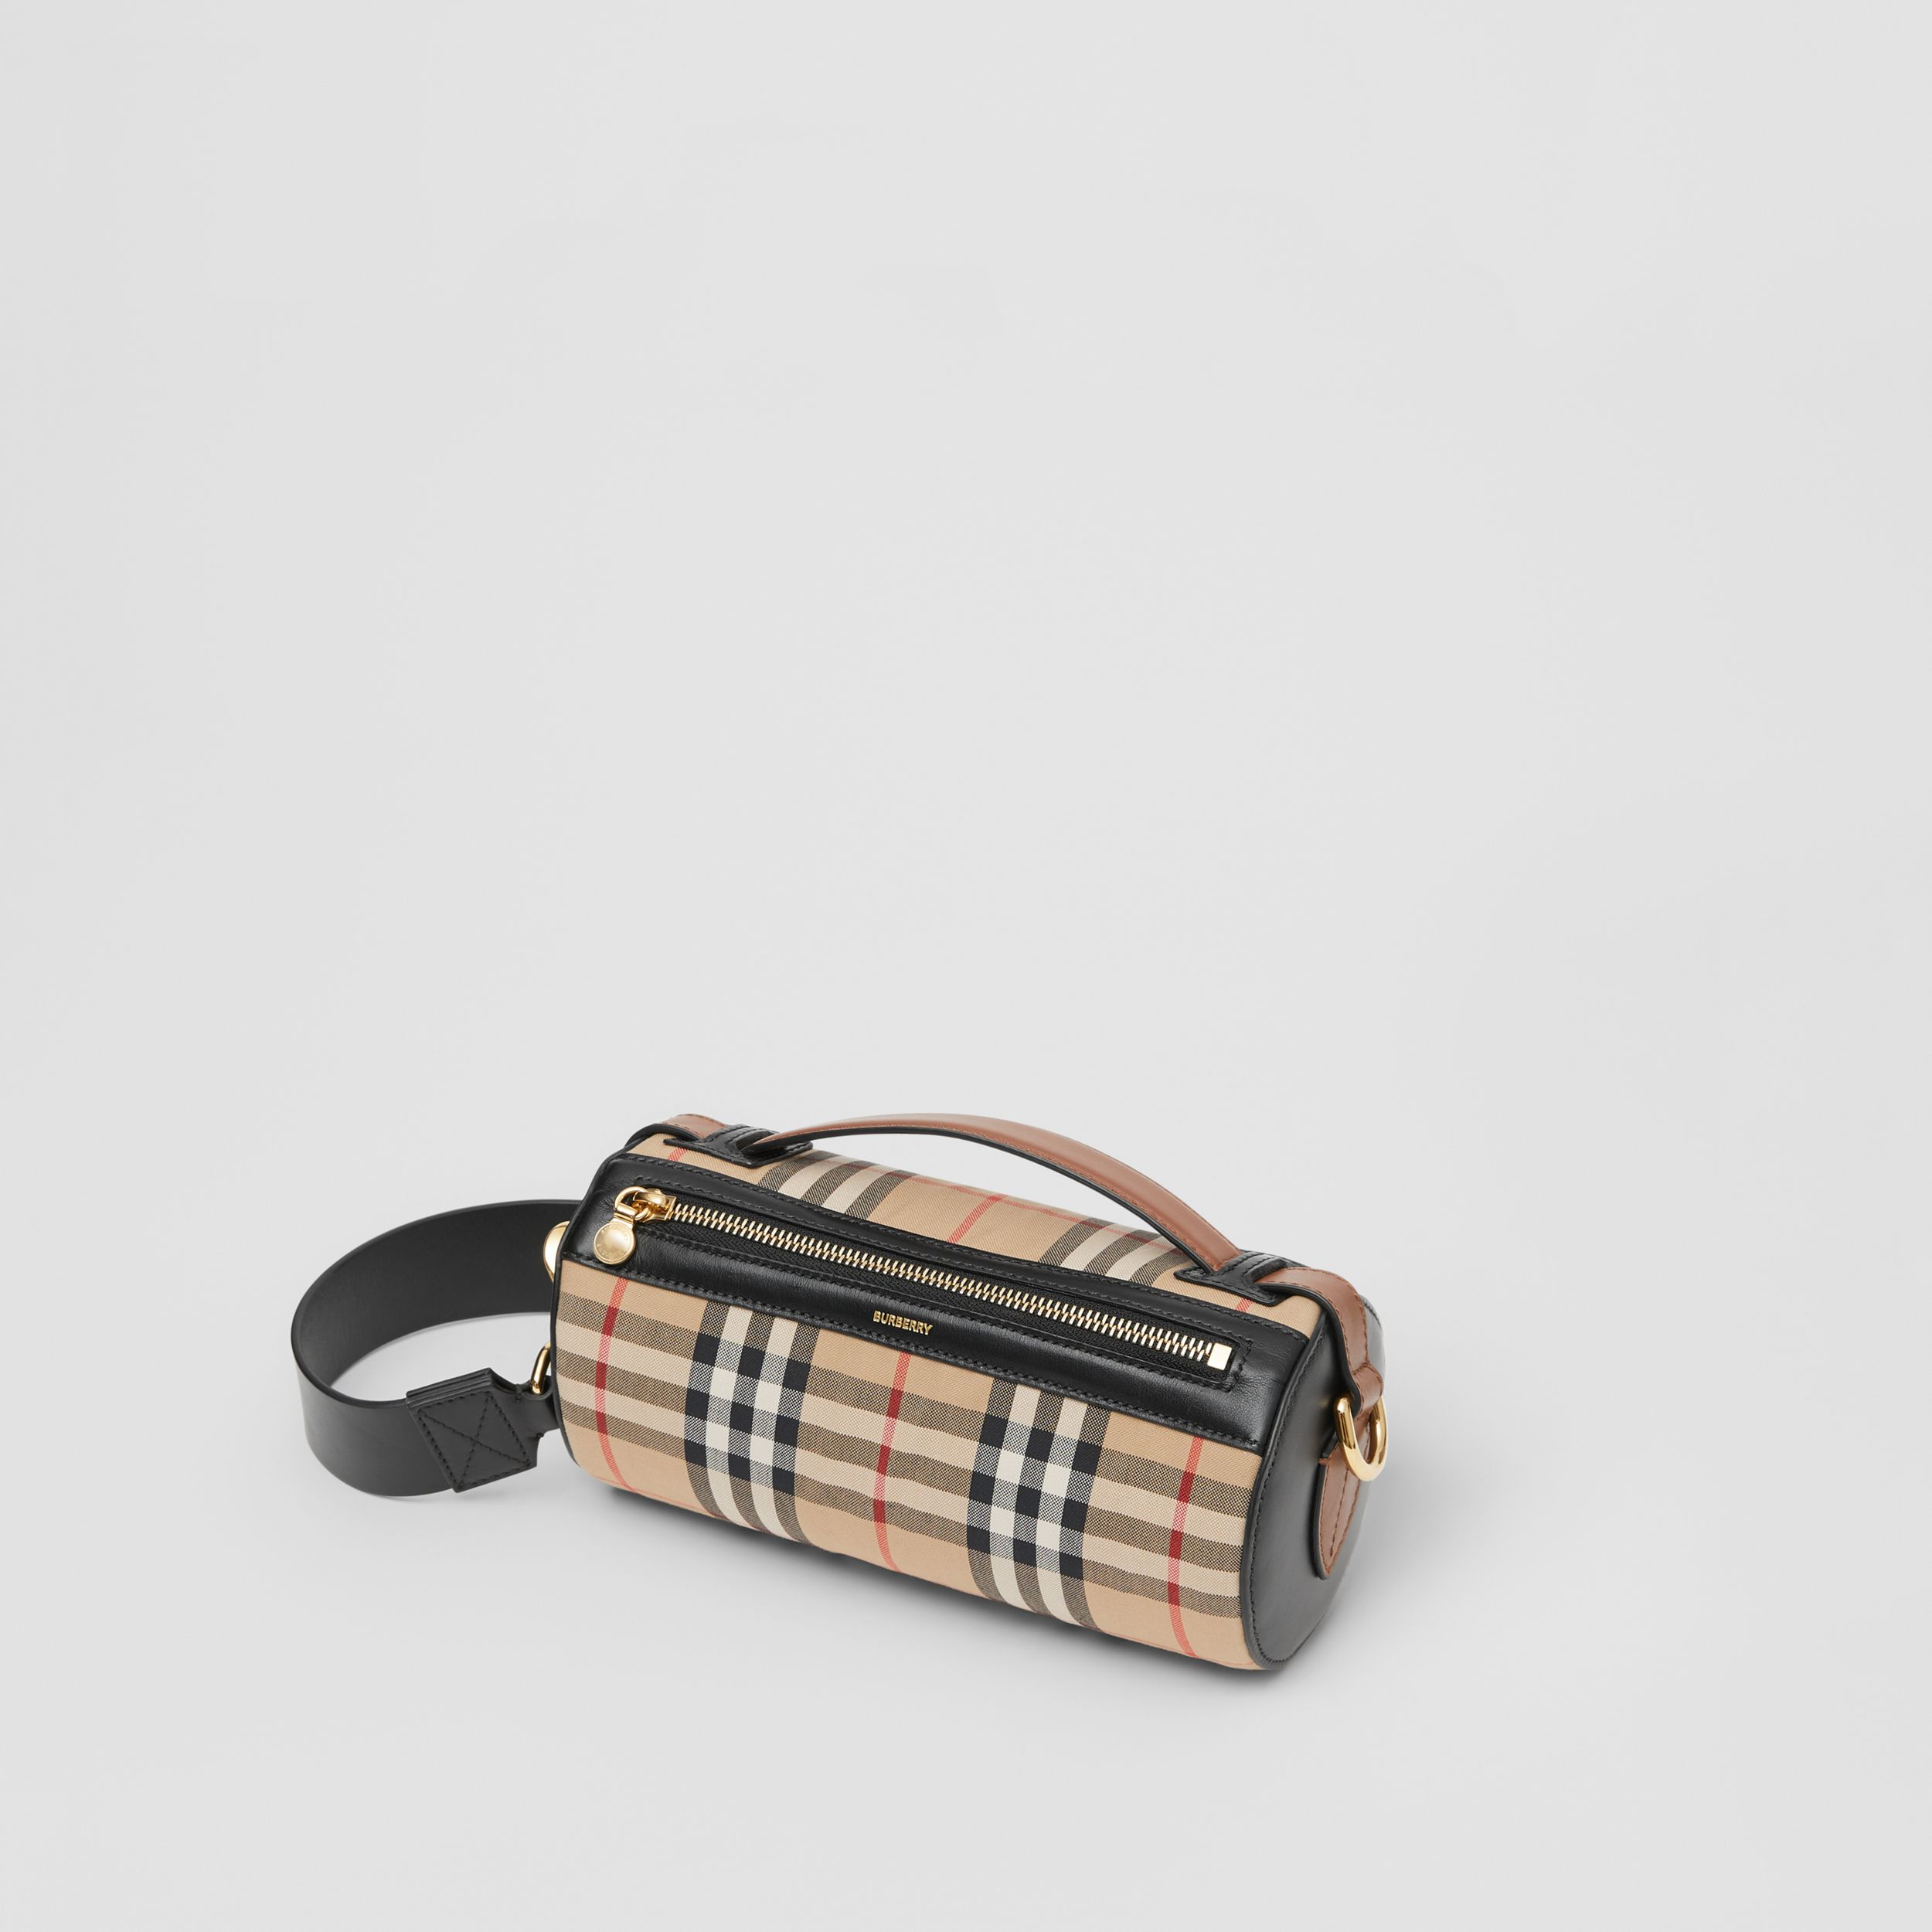 Borsa The Barrel con motivo Vintage check e finiture in pelle (Beige Archivio/nero) - Donna | Burberry - 4